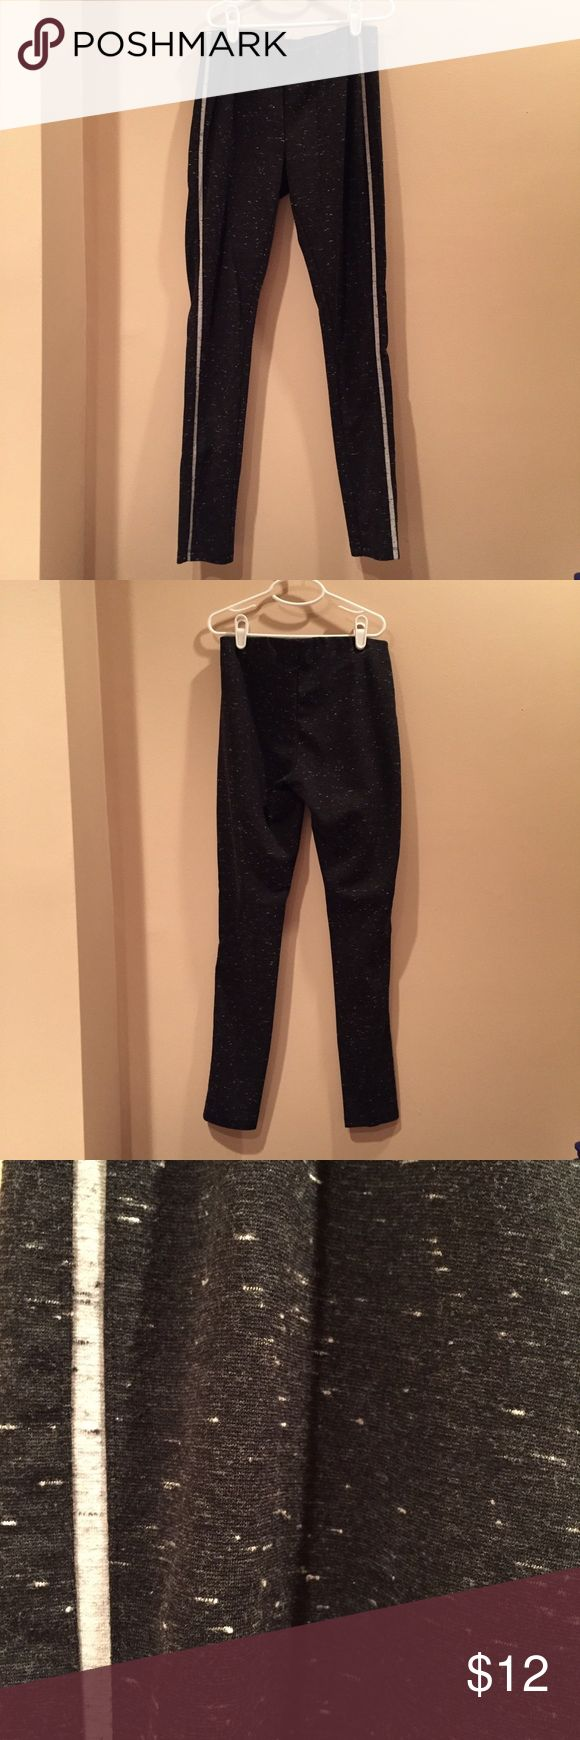 Heathered charcoal leggings (Lou & Grey) Only worn a few times! These are dark charcoal heathered leggings with light grey stripes down the sides of the legs. They have an elastic waist band and fit snug with less stretch than your normal leggings. Originally bought from Loft/Lou & Grey. Lou & Grey Pants Leggings